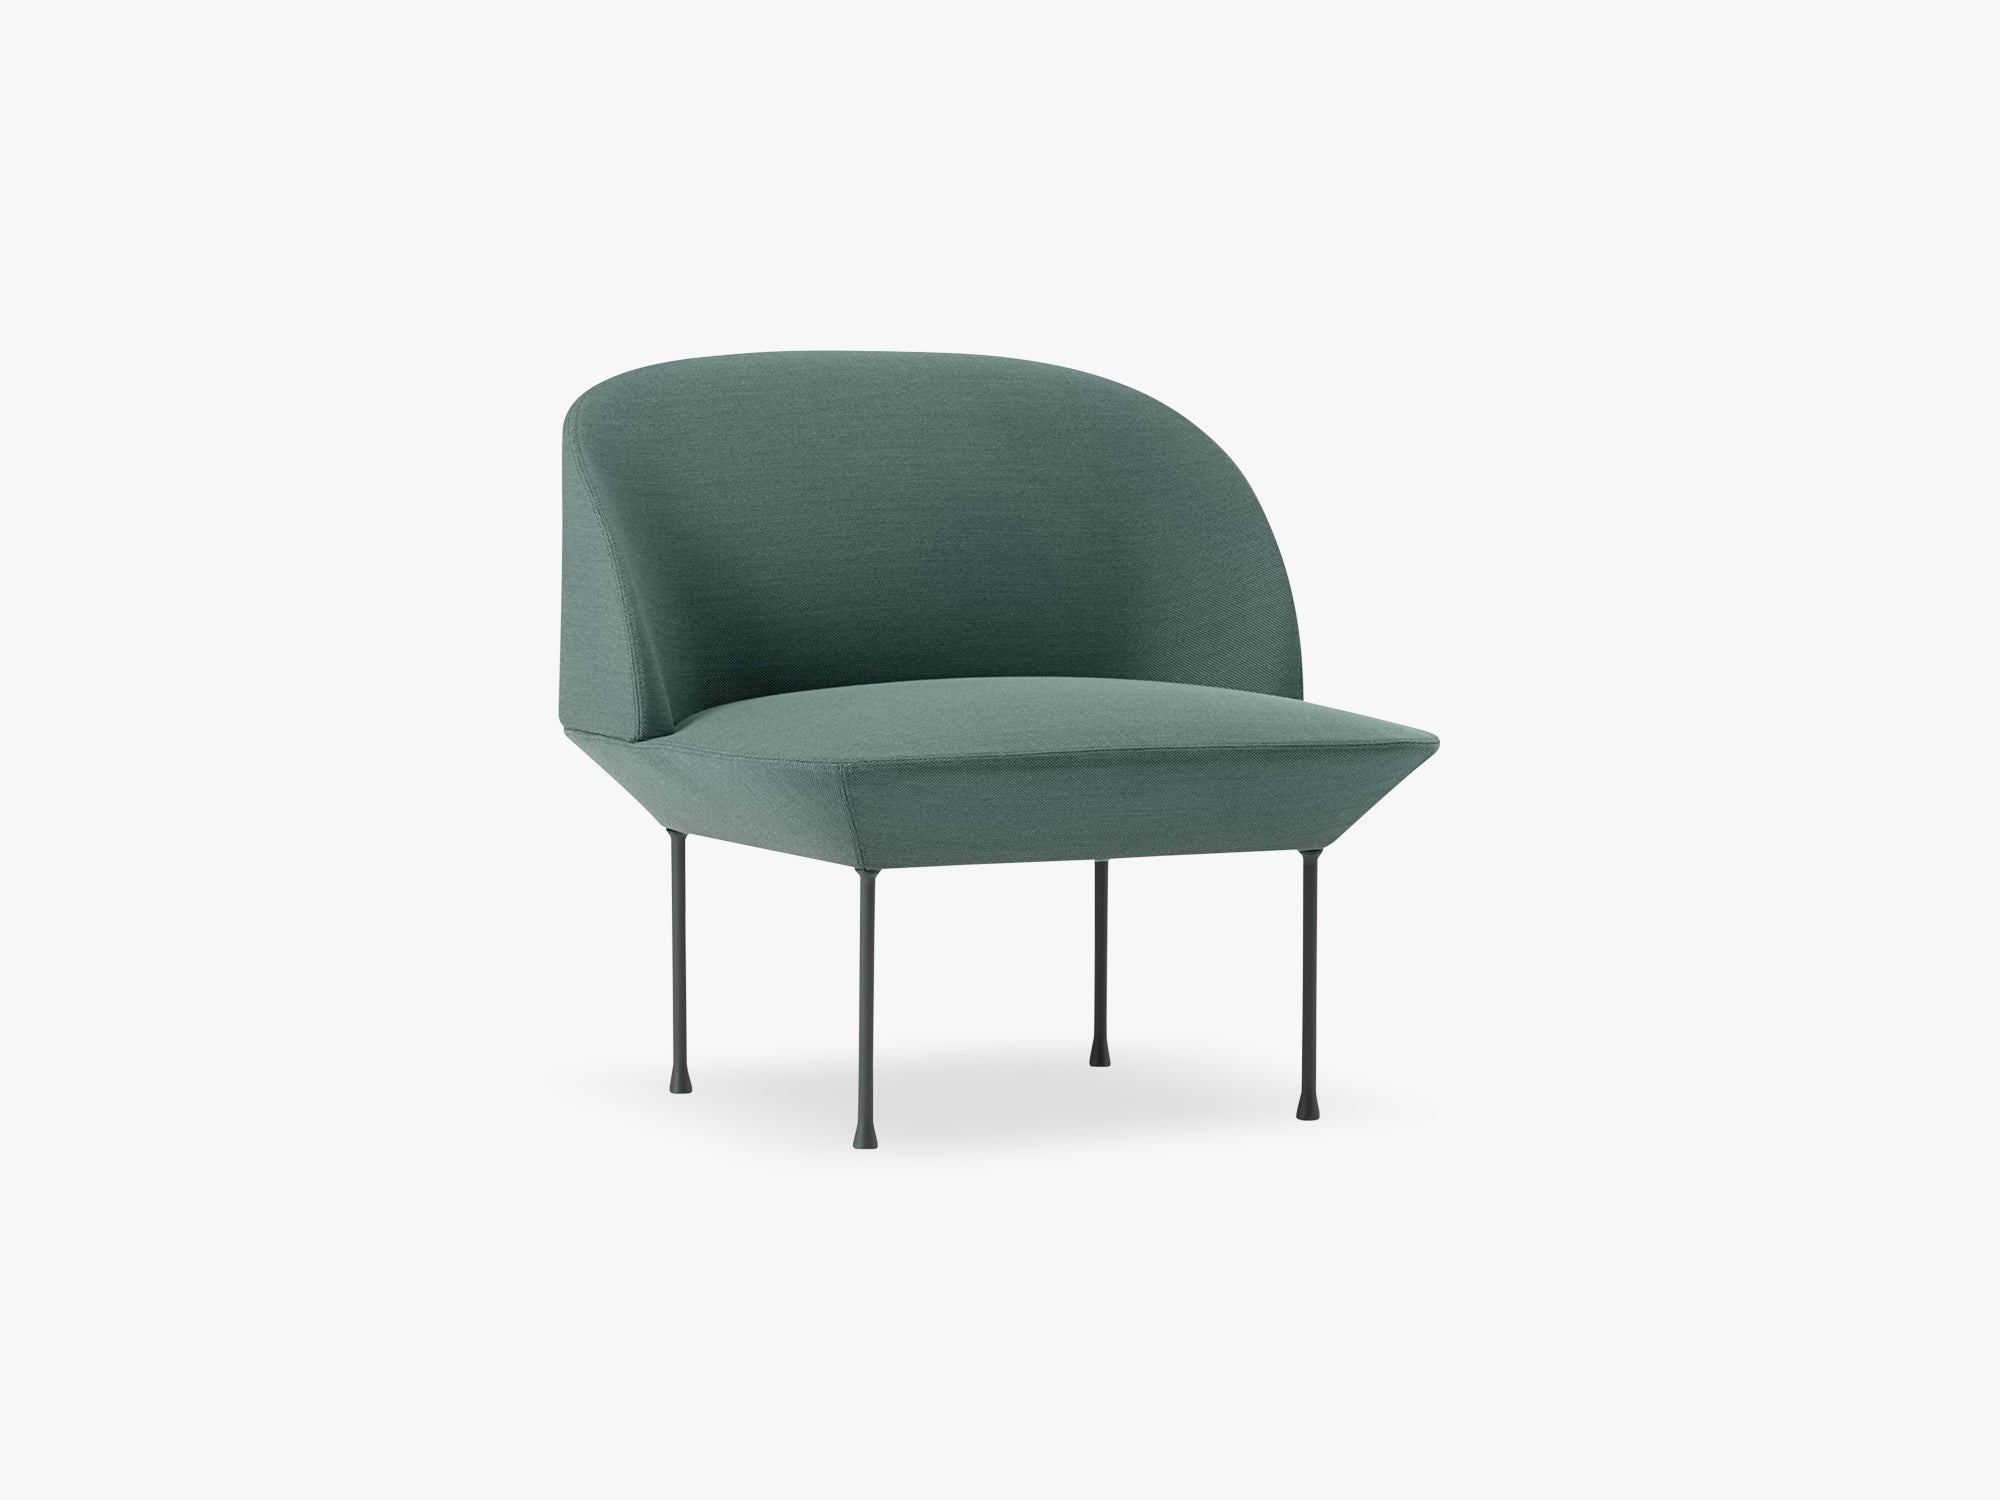 Oslo Lounge Chair / Lounge Chair, Steelcut Trio 966 / Dark Grey Legs fra Muuto